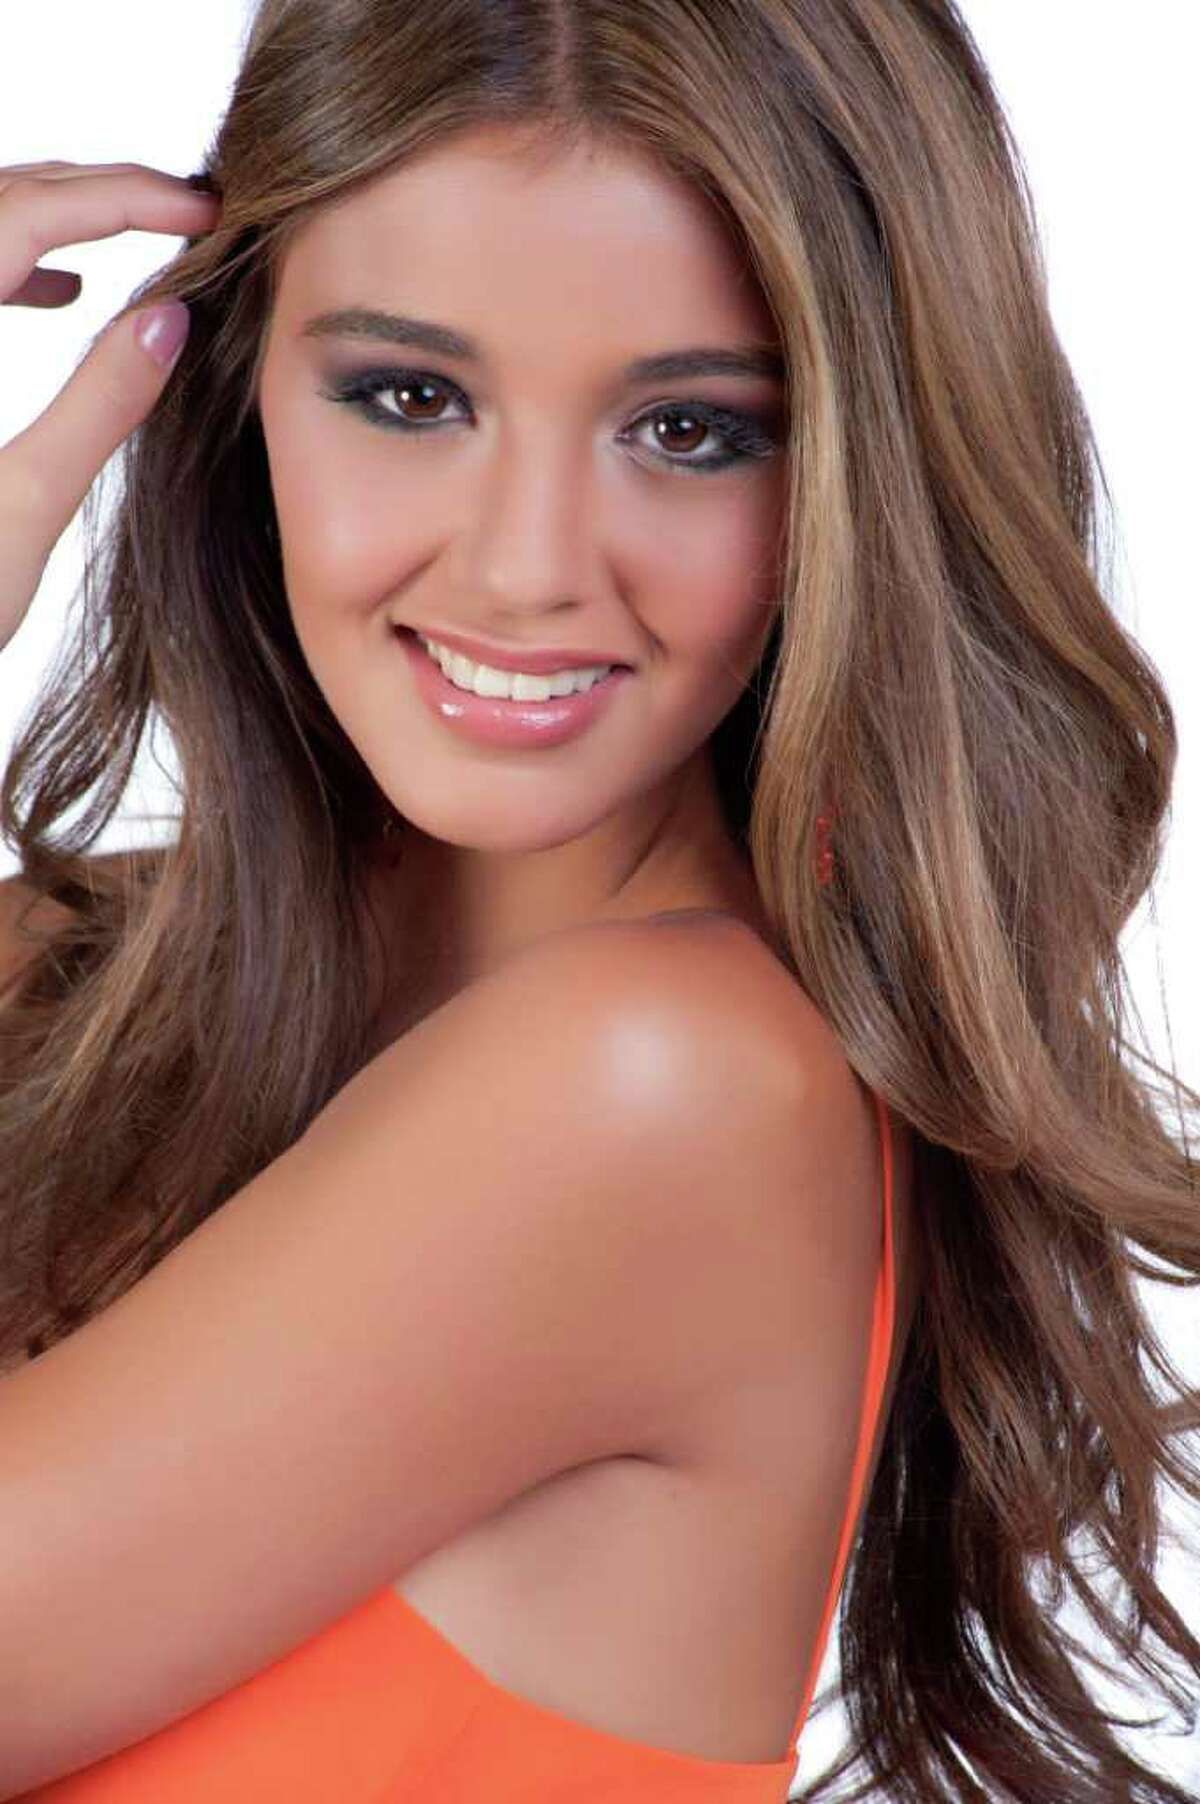 The Miss Universe competition will be held on Sept. 12 in São Paulo, Brazil. Here is a look at the contestants, starting with Miss Israel 2011, Kim Edri.